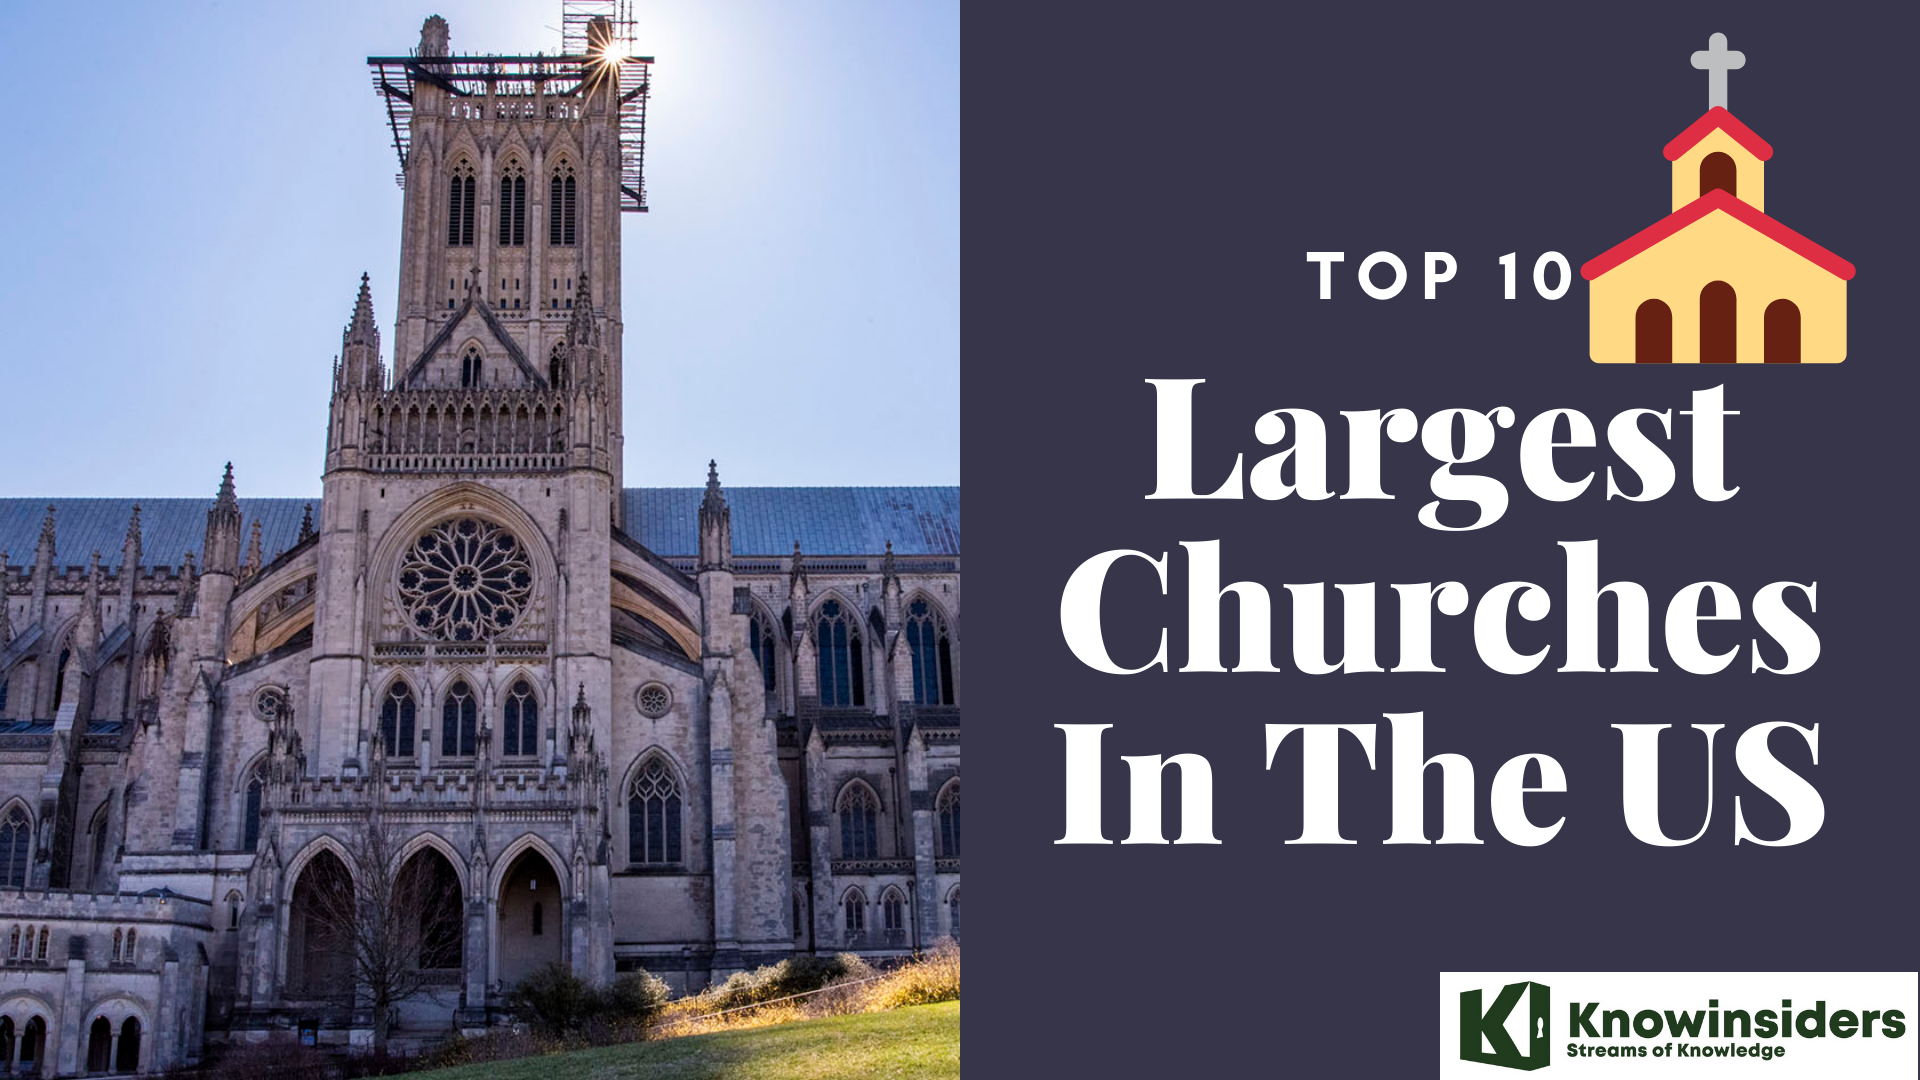 top 10 largest churches in the US